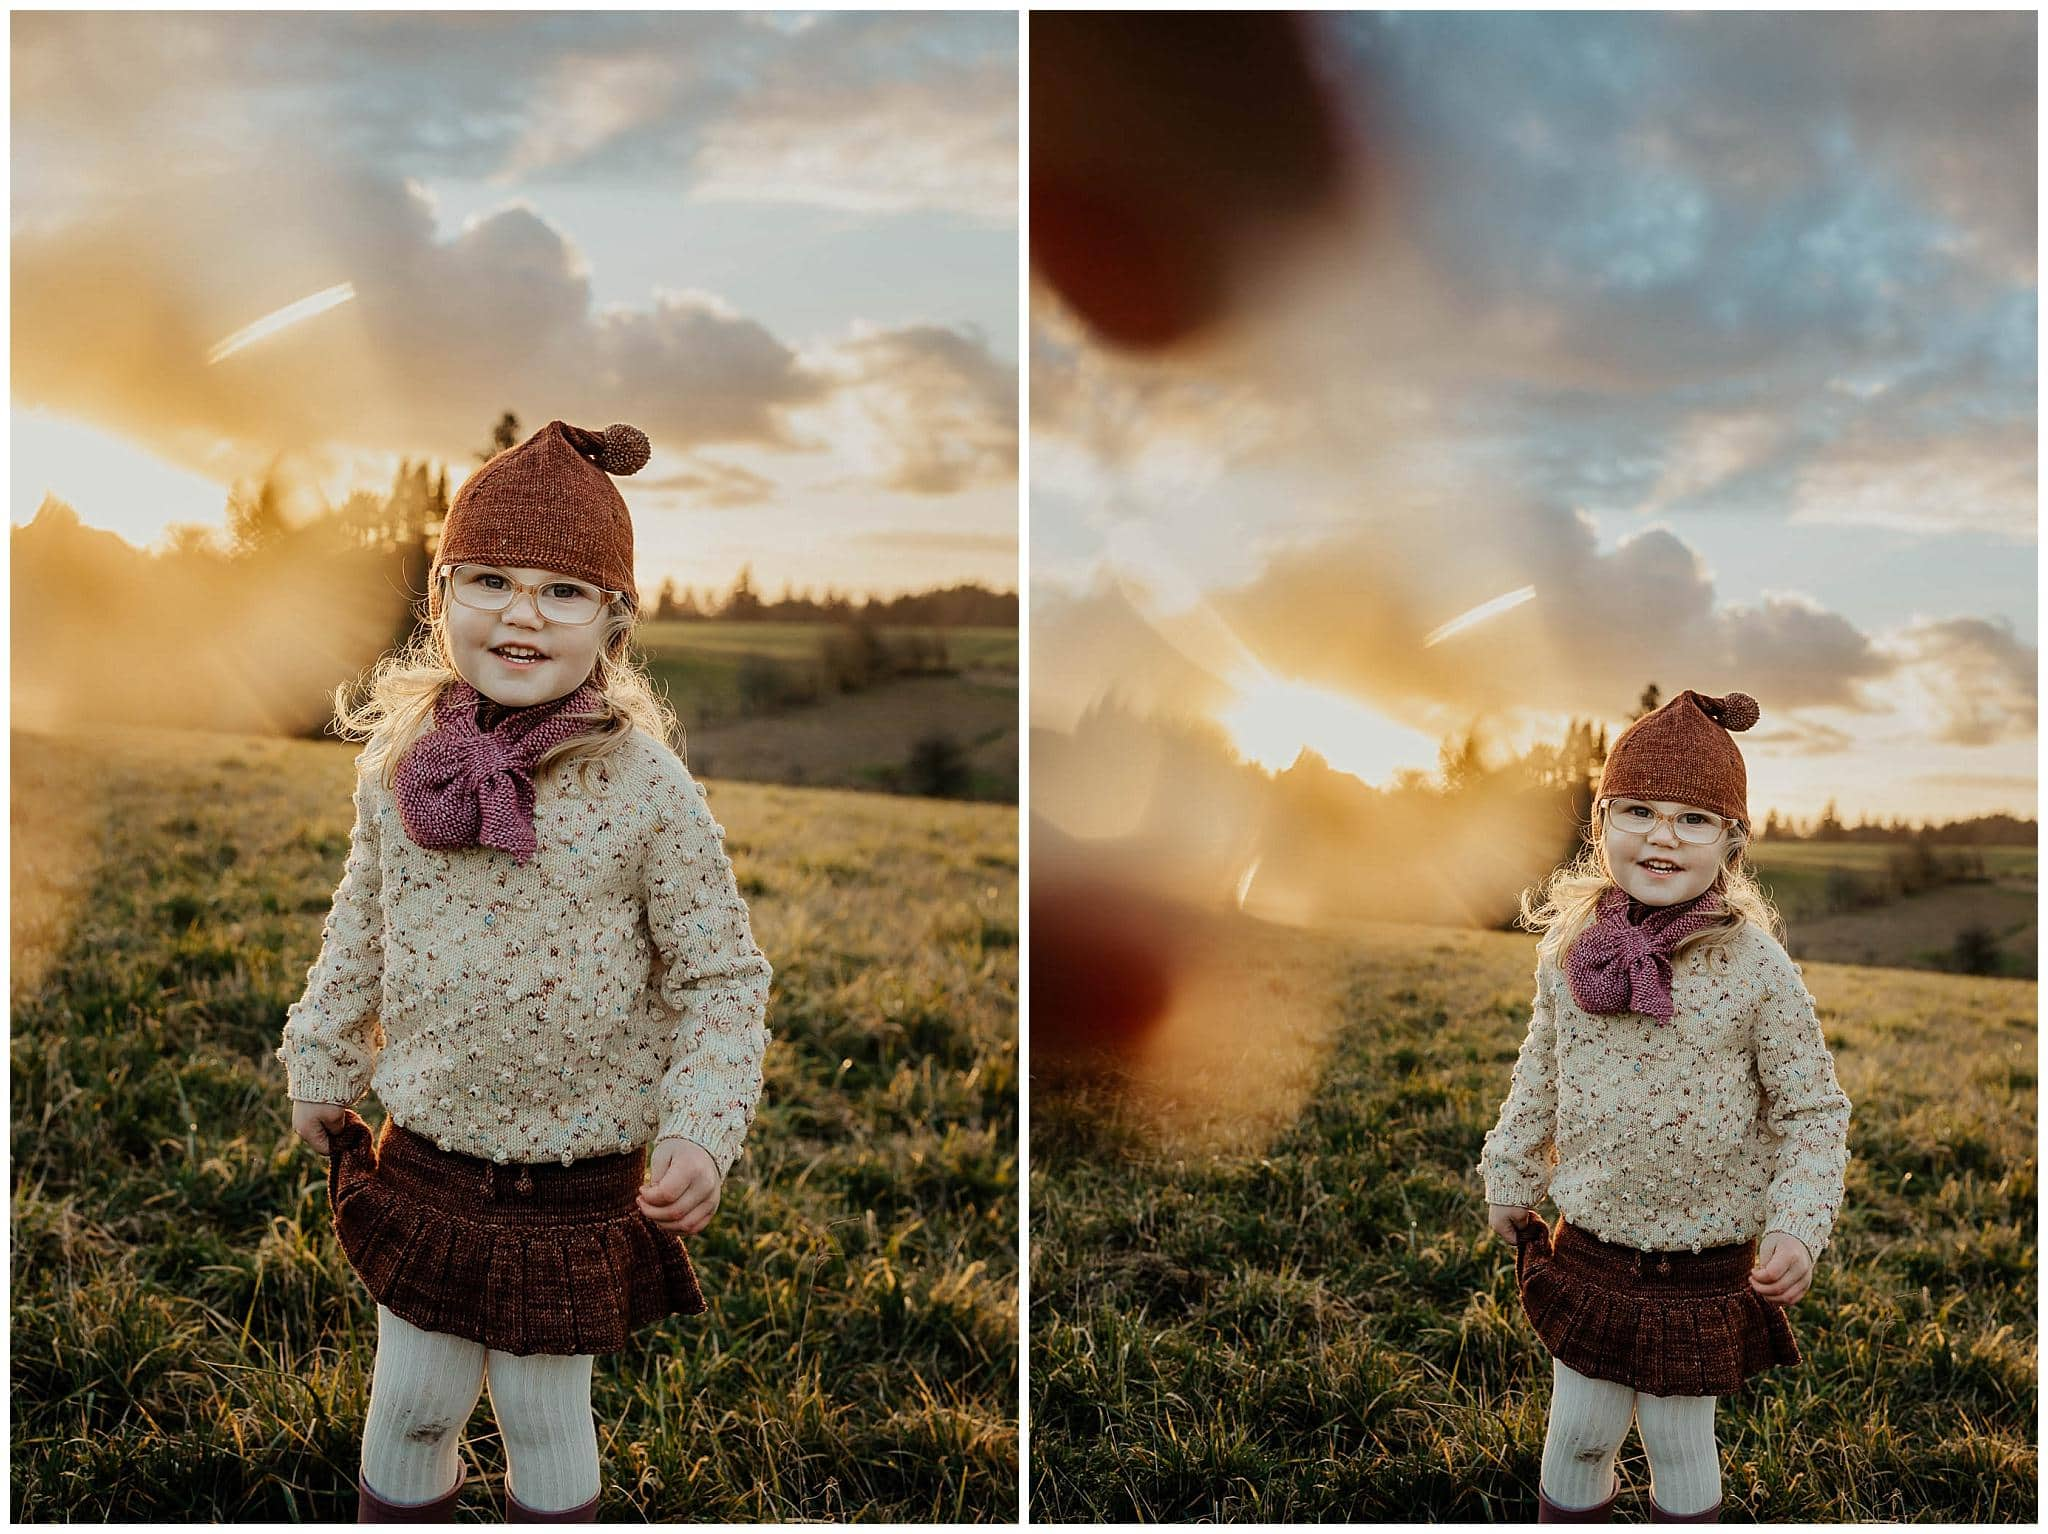 3-year-old girl in a field with the sunset behind her